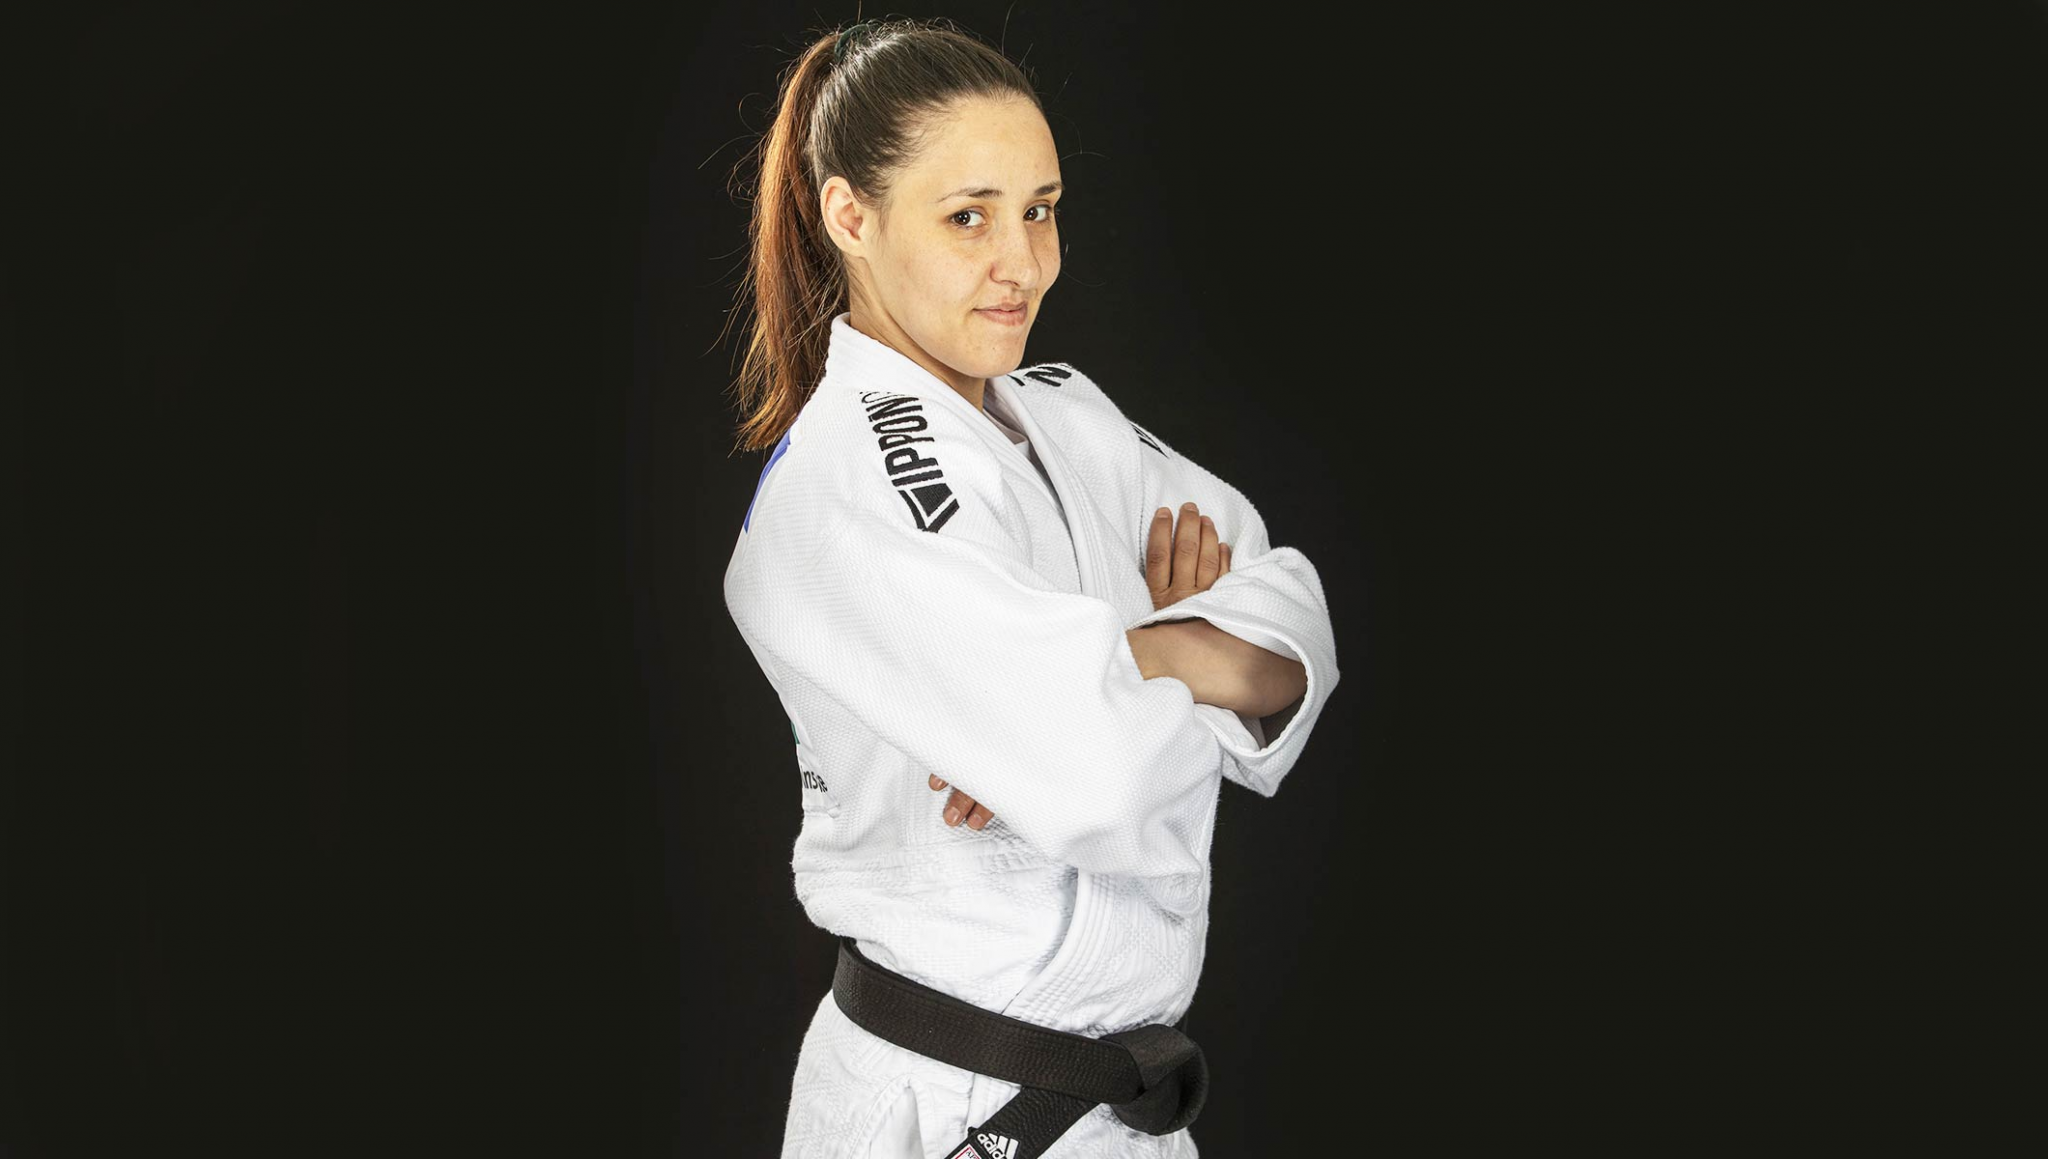 Sanda Aldass hopes to compete at Tokyo 2020 as part of the refugee Olympic team ©International Judo Federation